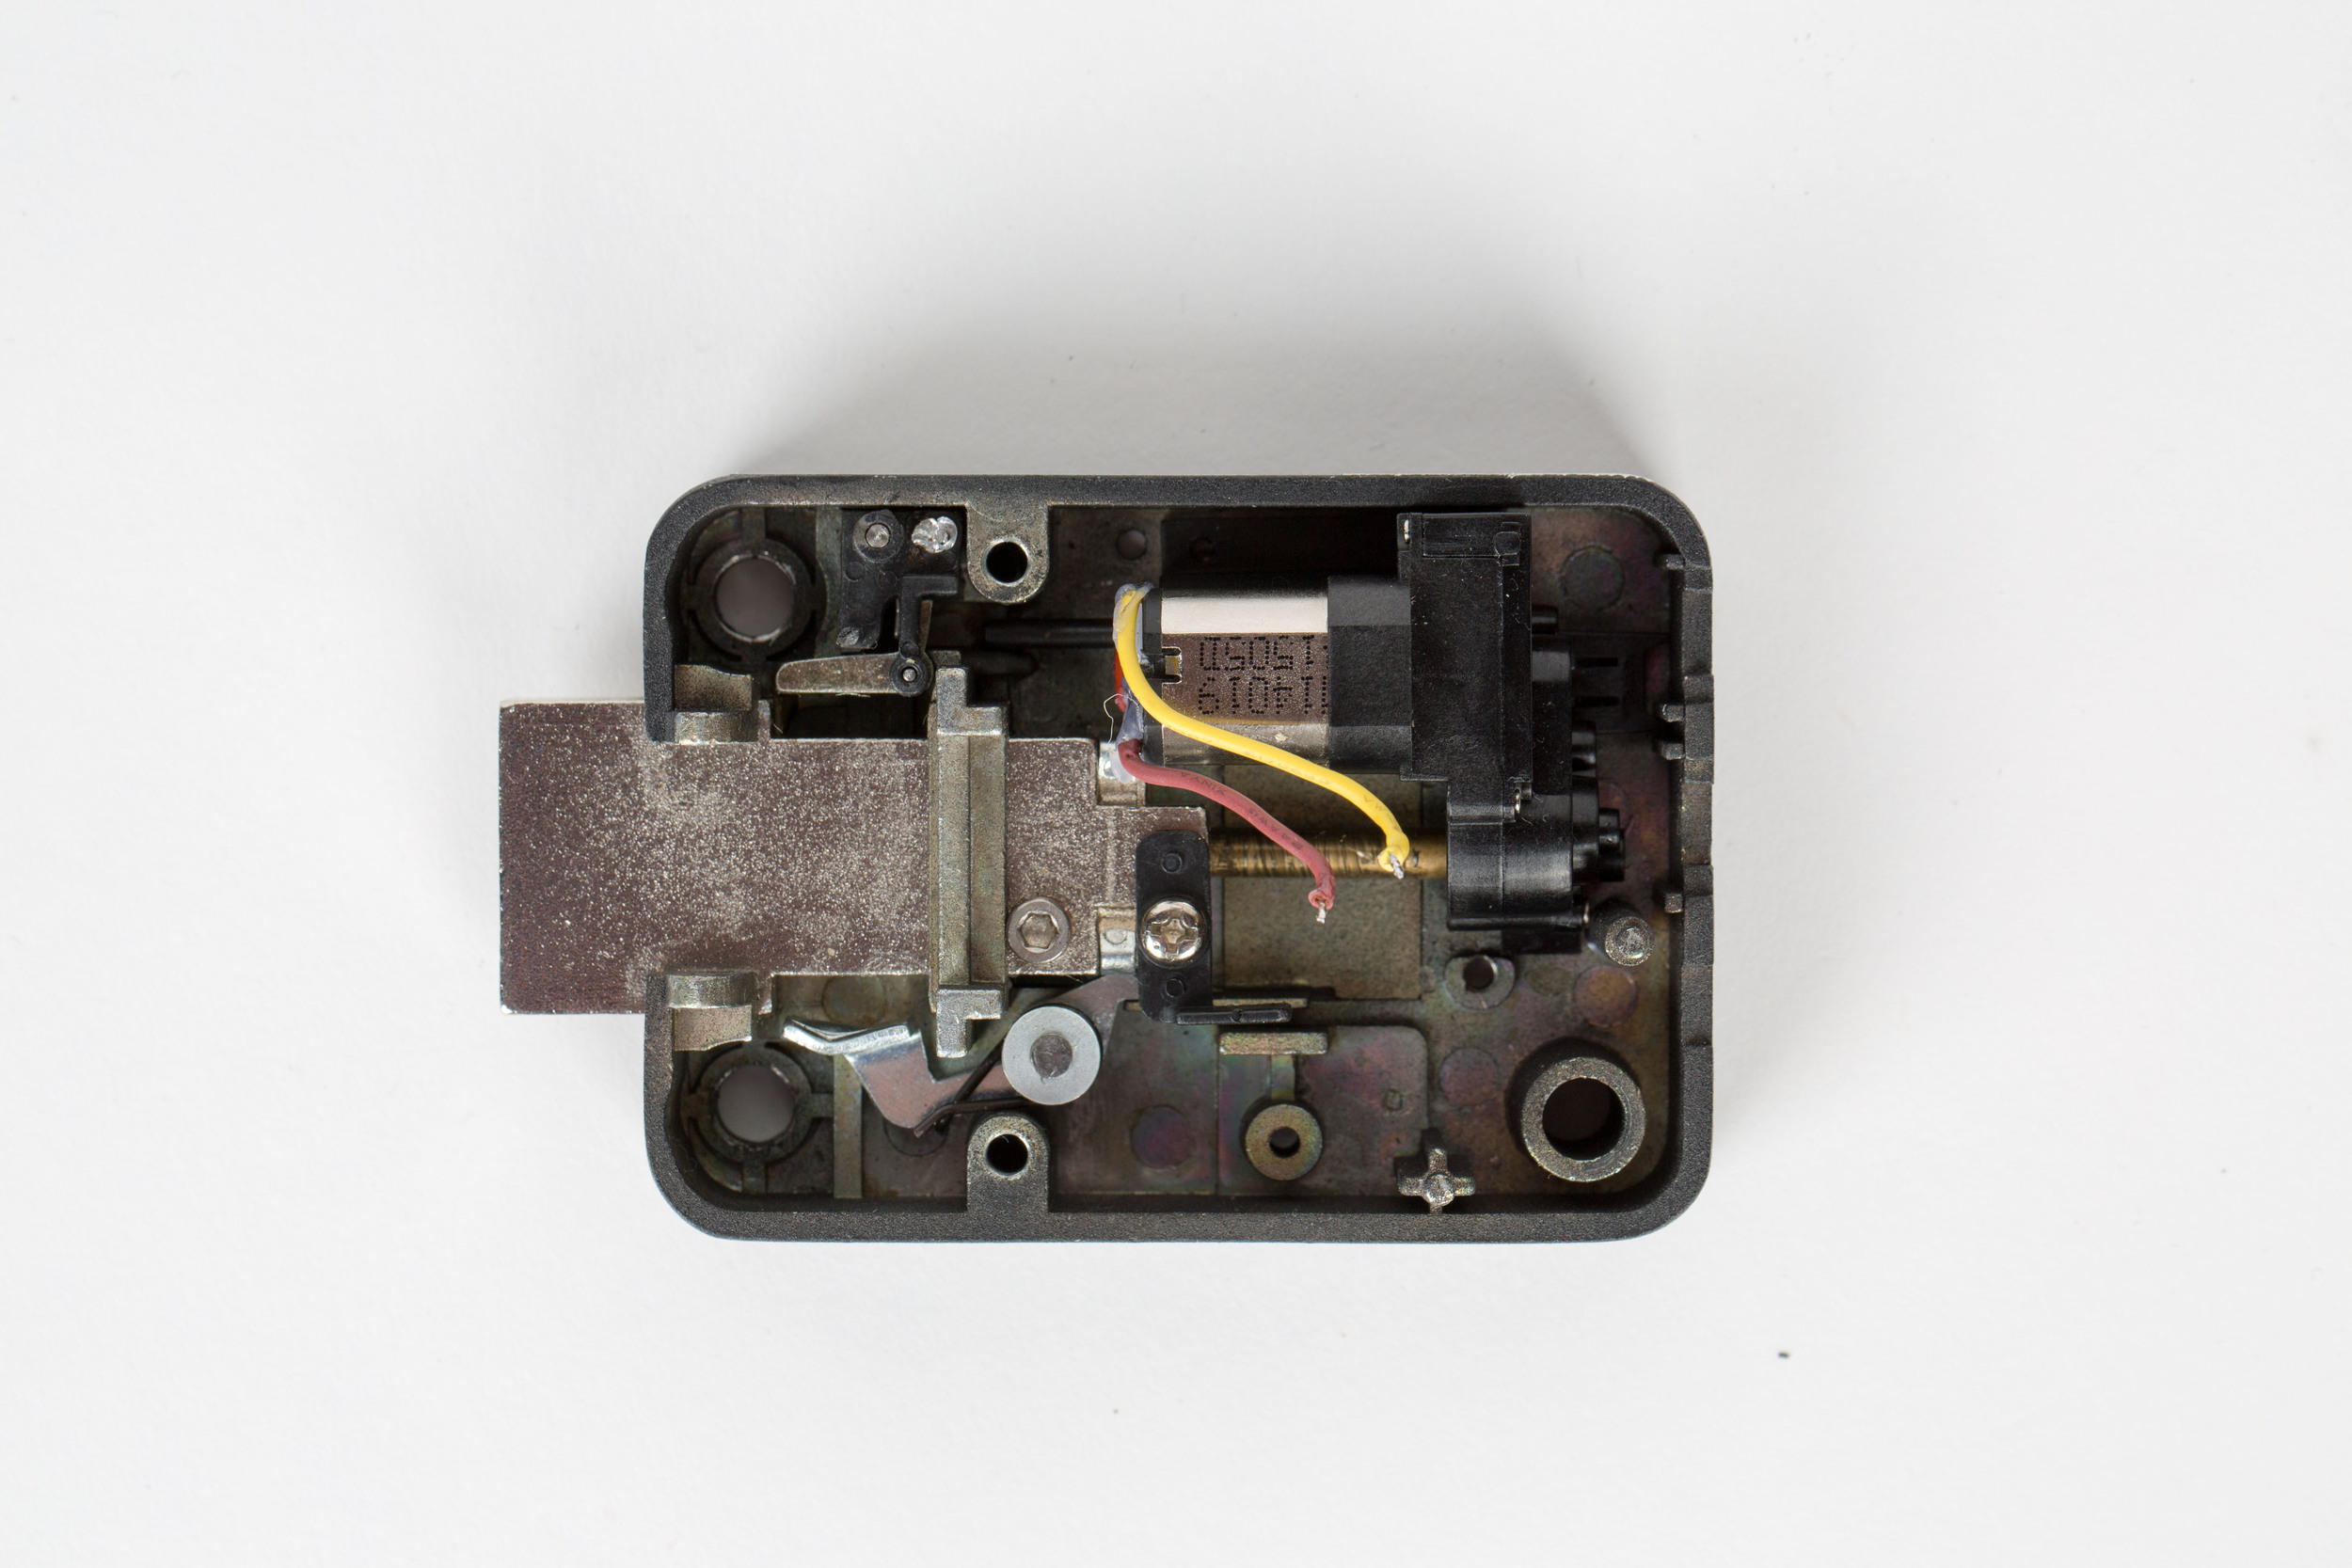 The lock body is the only mechanical part of the system. It is composed of a DC motor and bolt. If 5 volts is applied across the red and yellow wires shown, the DC motor will retract the bolt and allow the security container to be opened.